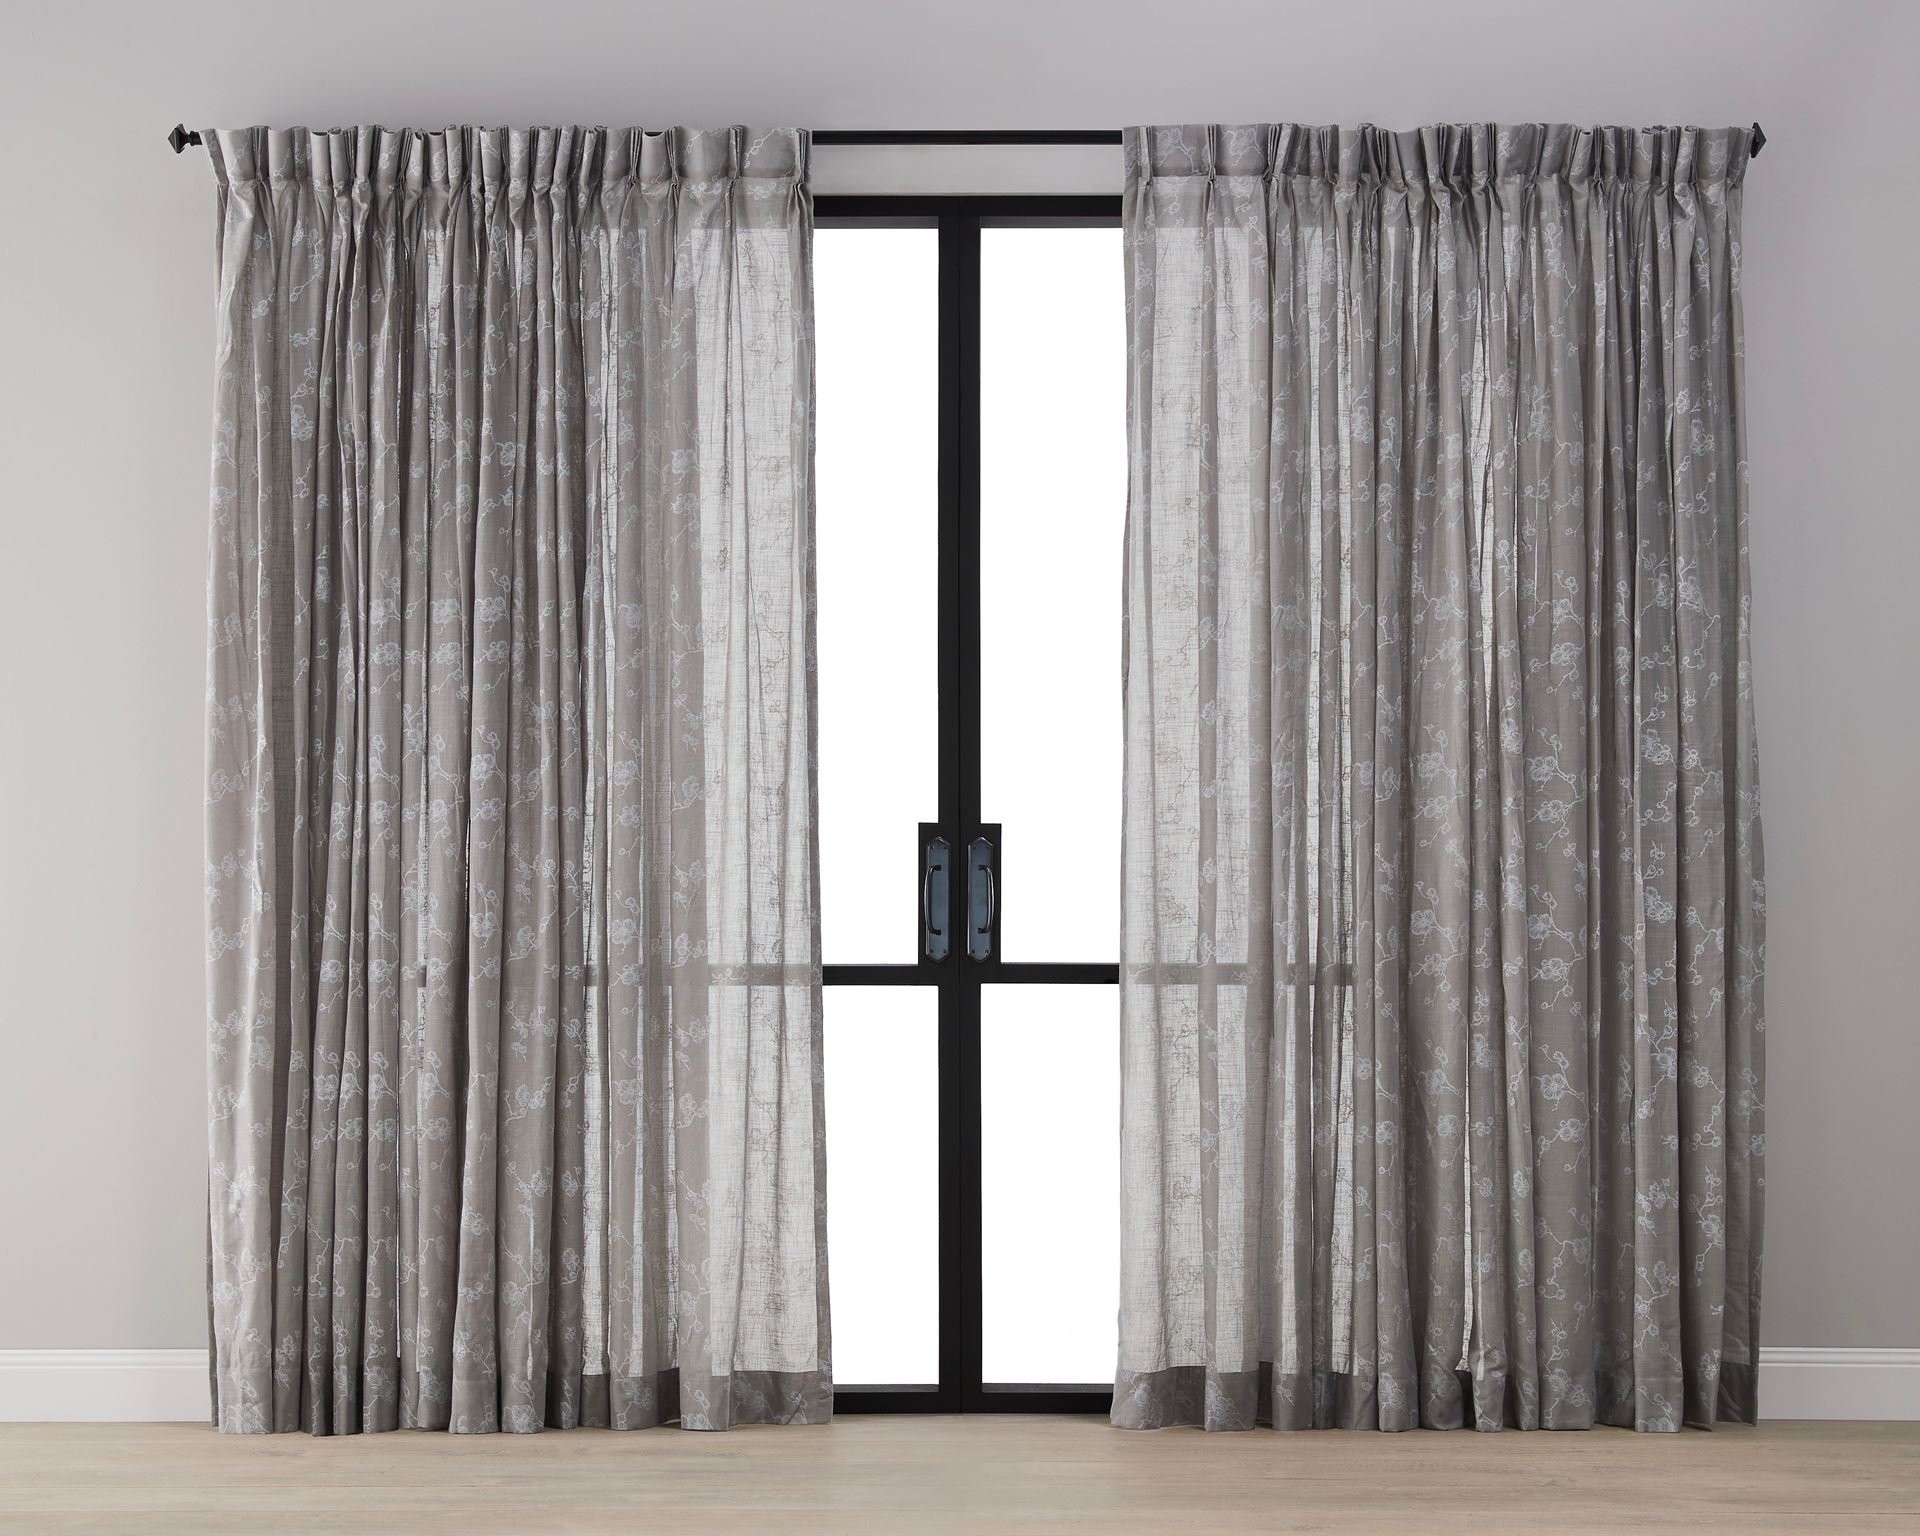 Picture of Plum Blossom Sheer Curtain - Mocha